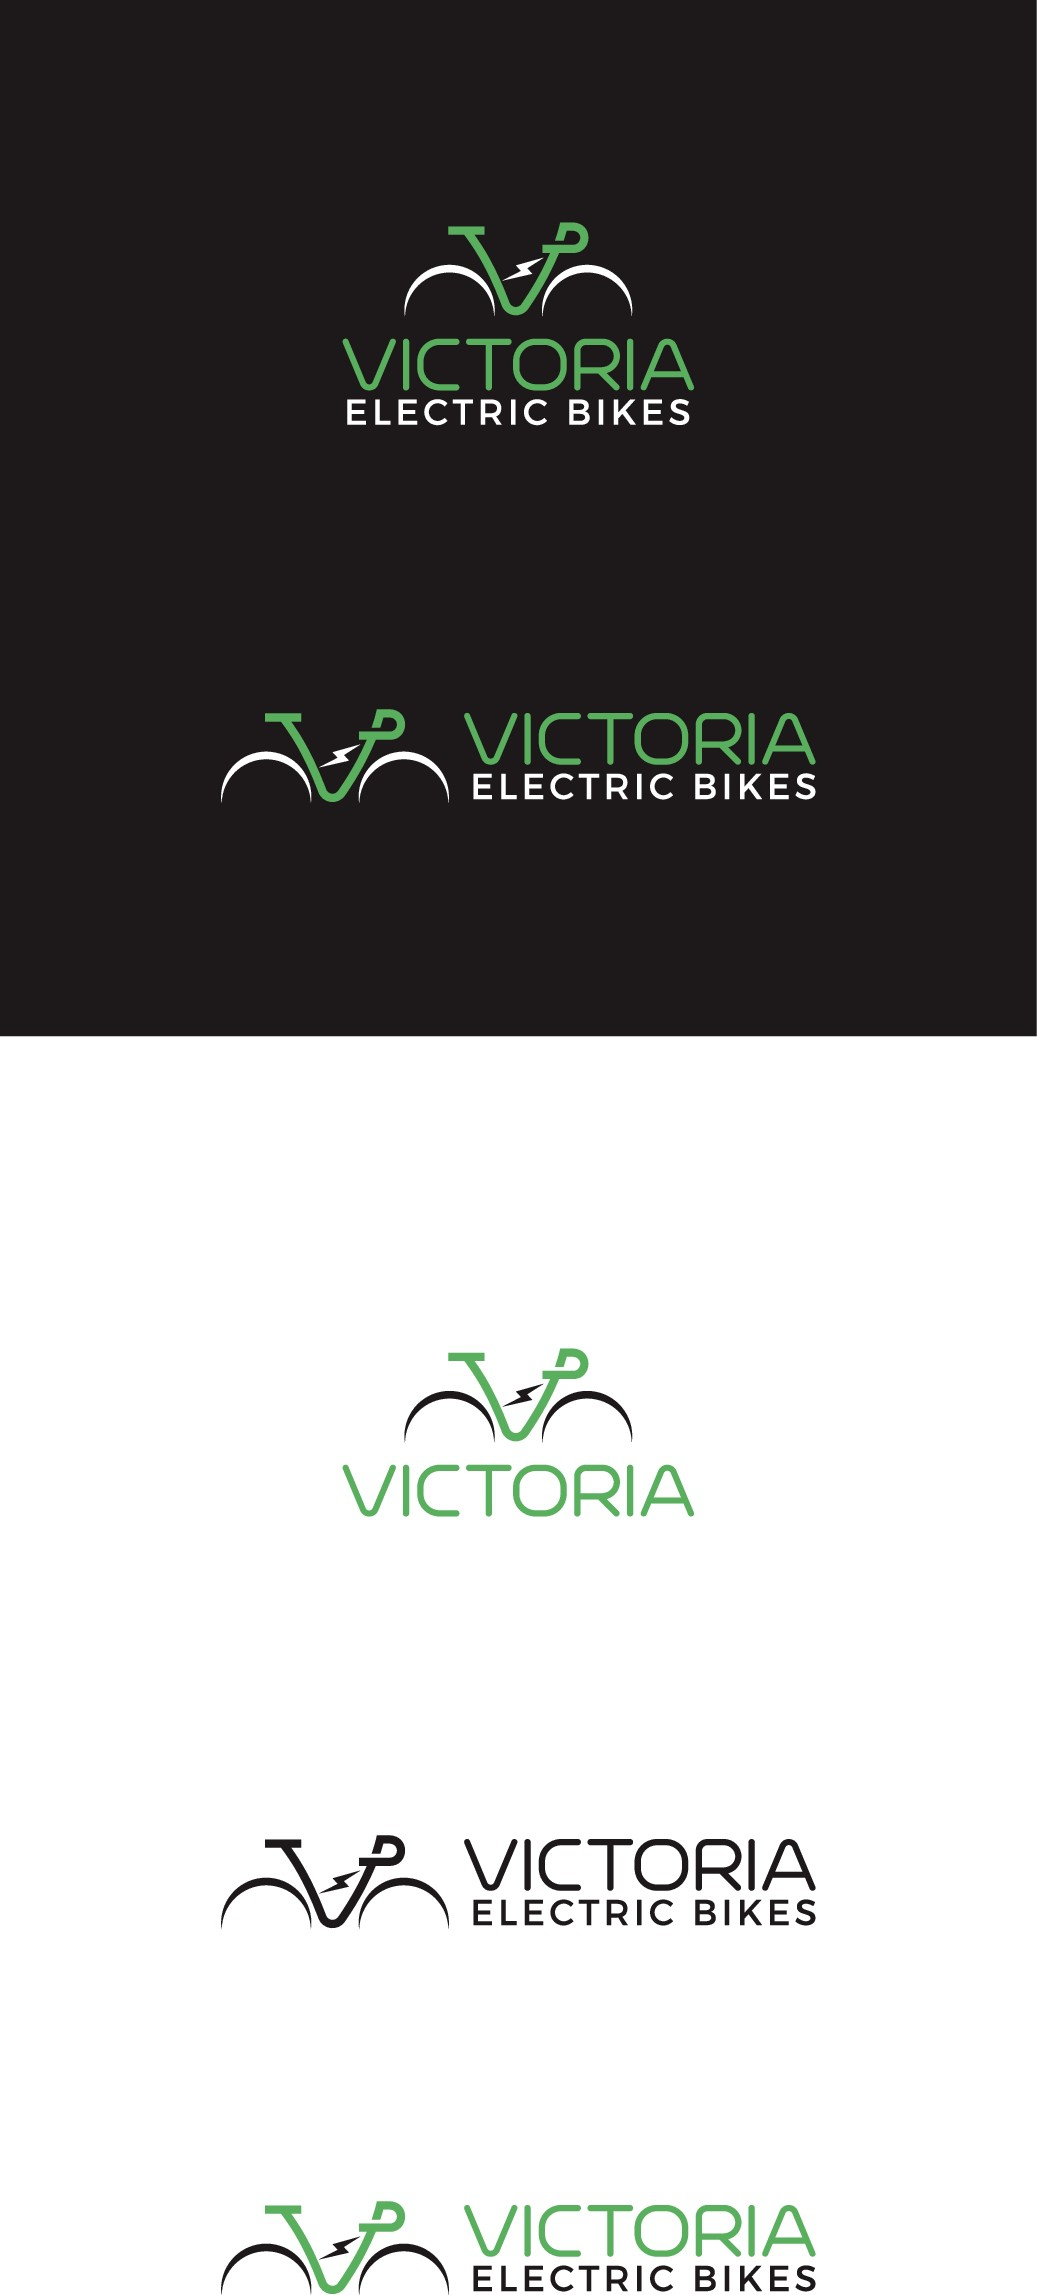 Design an Energizing Logo for Victoria Electric Bikes